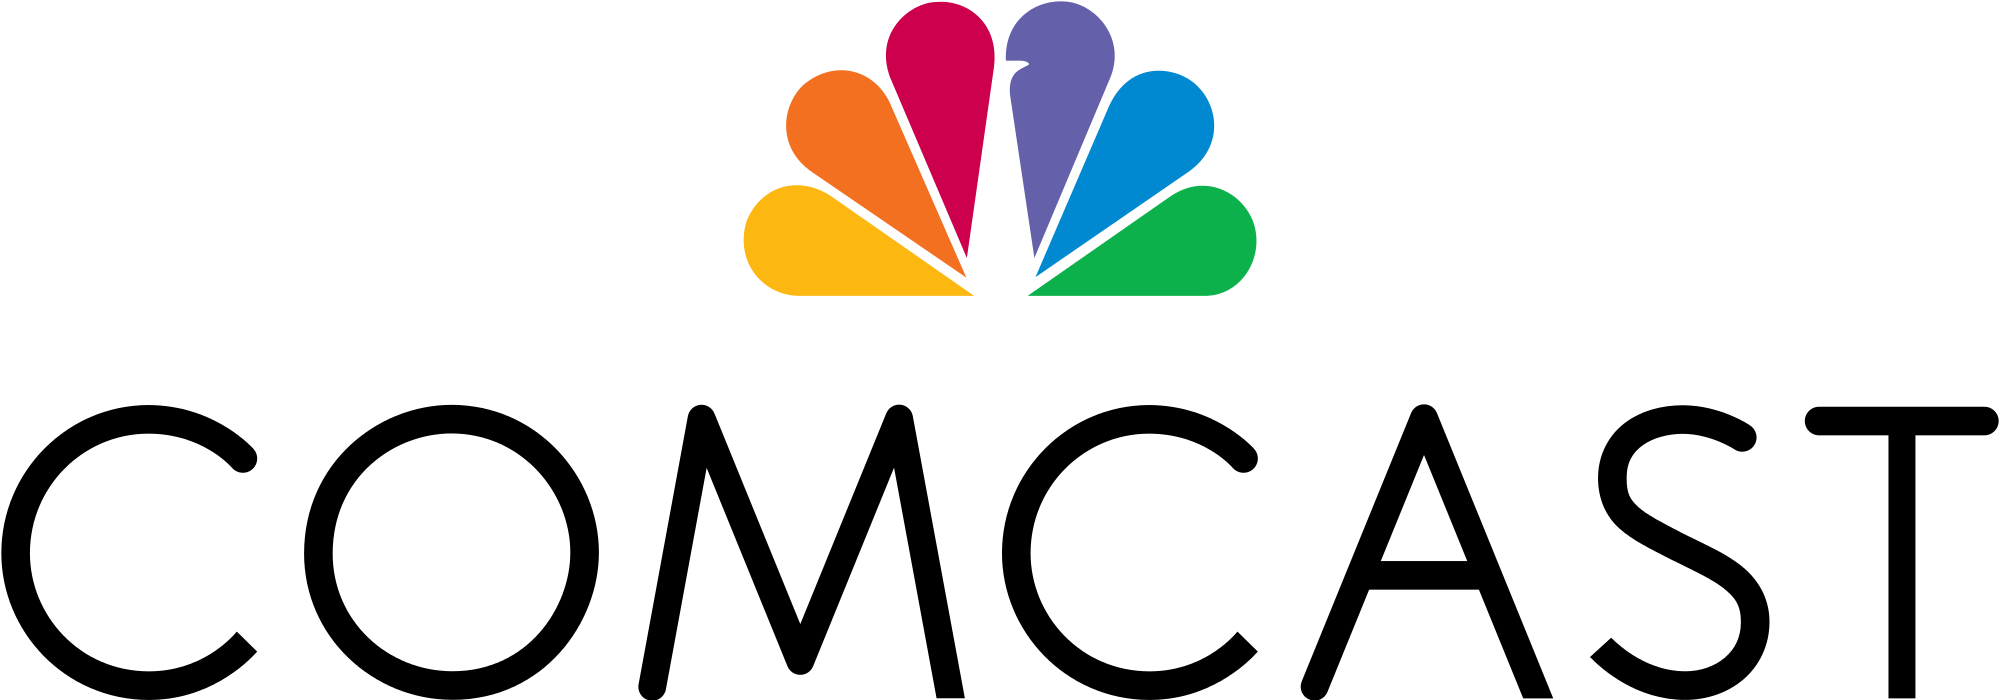 Comcast Launches New Watchable Video Platform With GarageMonkey As A Launch Partner